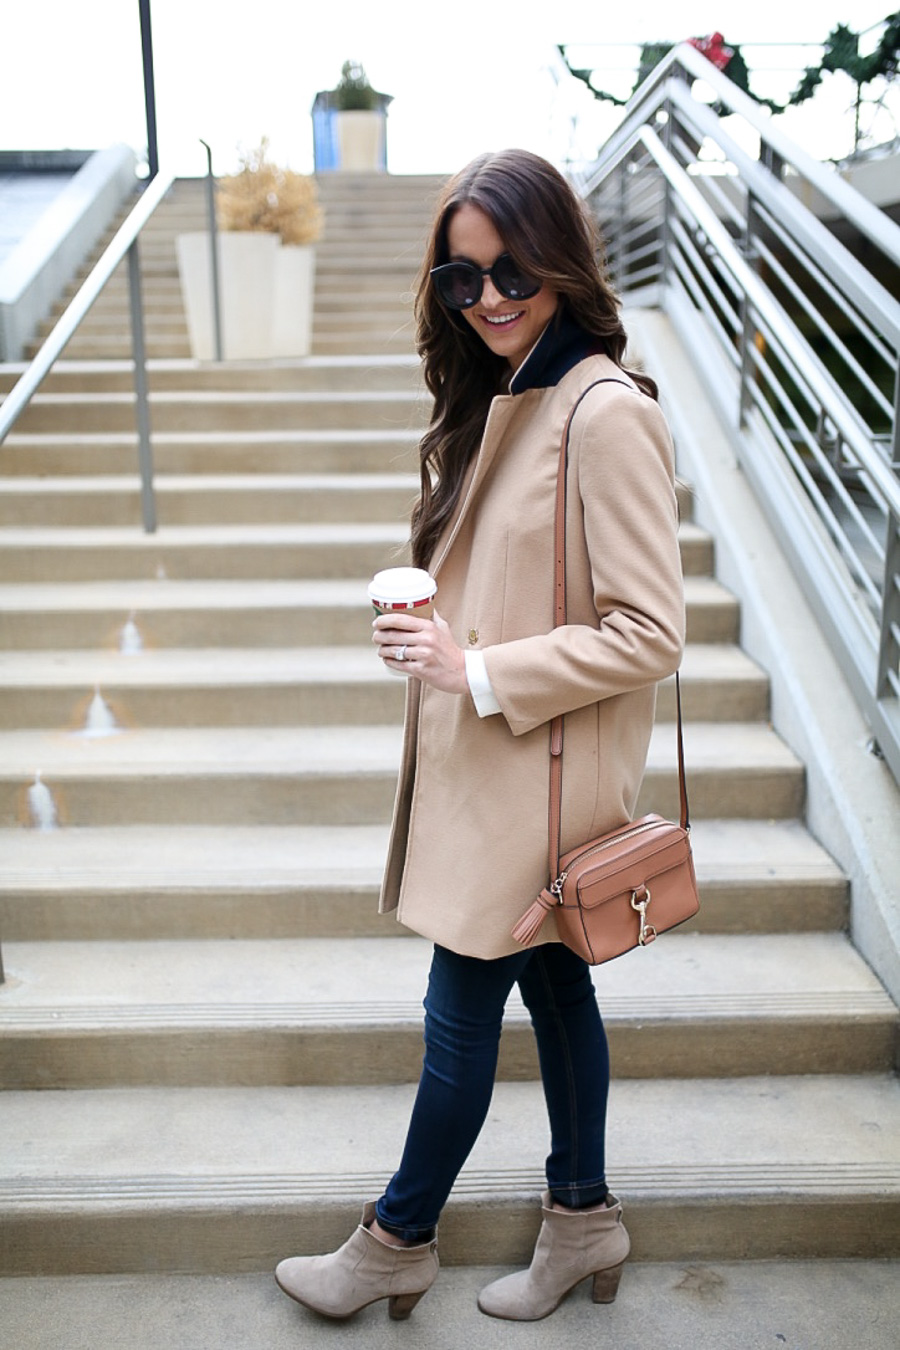 classic camel coat + my #1 resolution